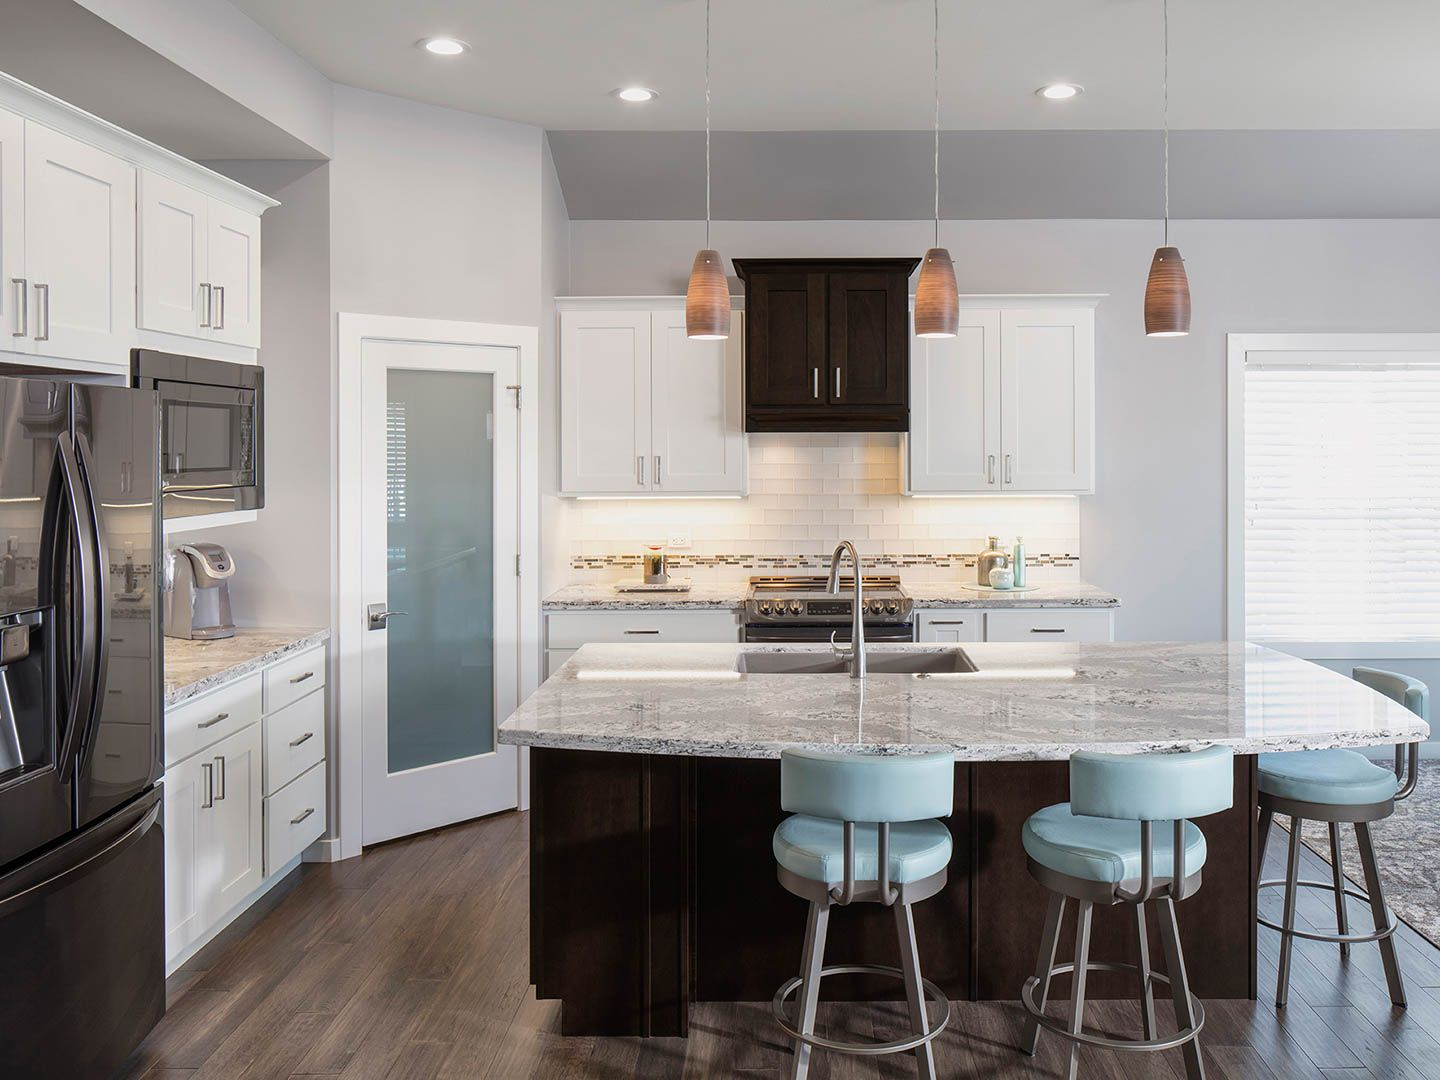 Best Gallery Aspect Cabinetry Kitchen Home Decor Decor 400 x 300